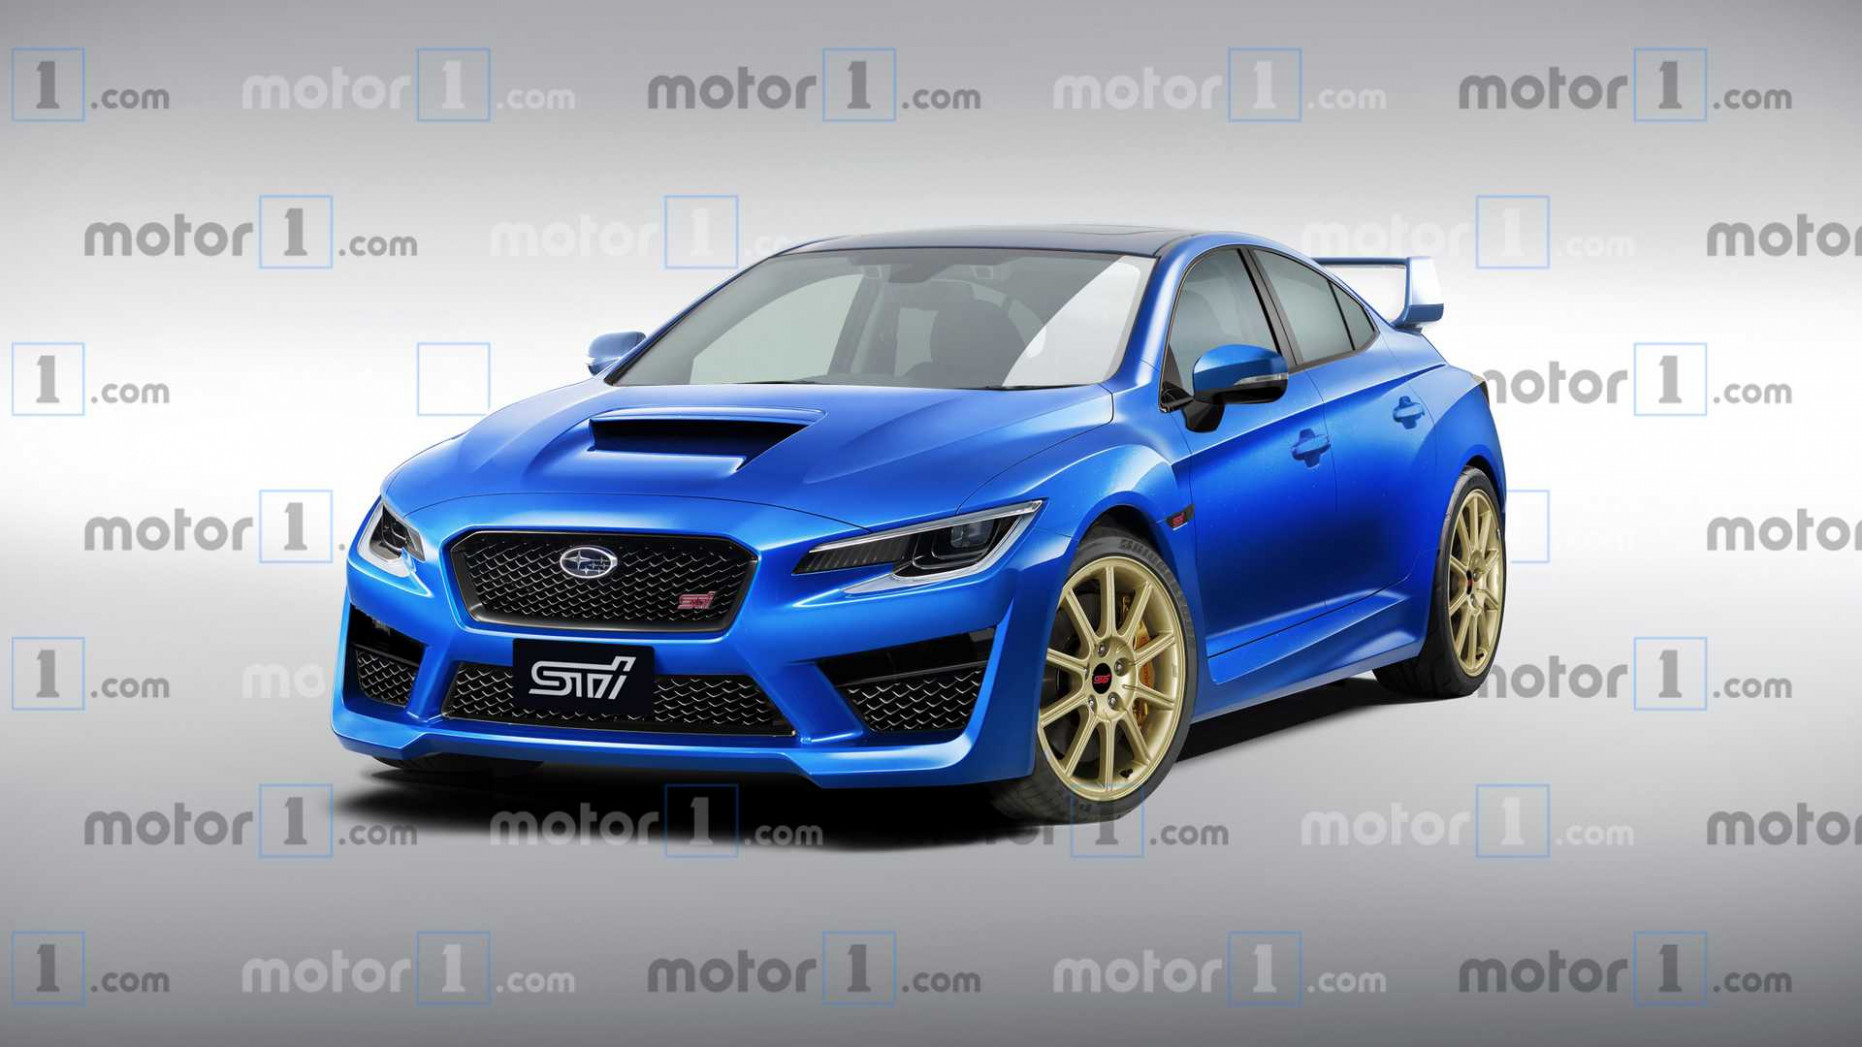 New Subaru WRX, WRX STI, Levorg Coming In Late 8: Report - 2020 subaru impreza specs